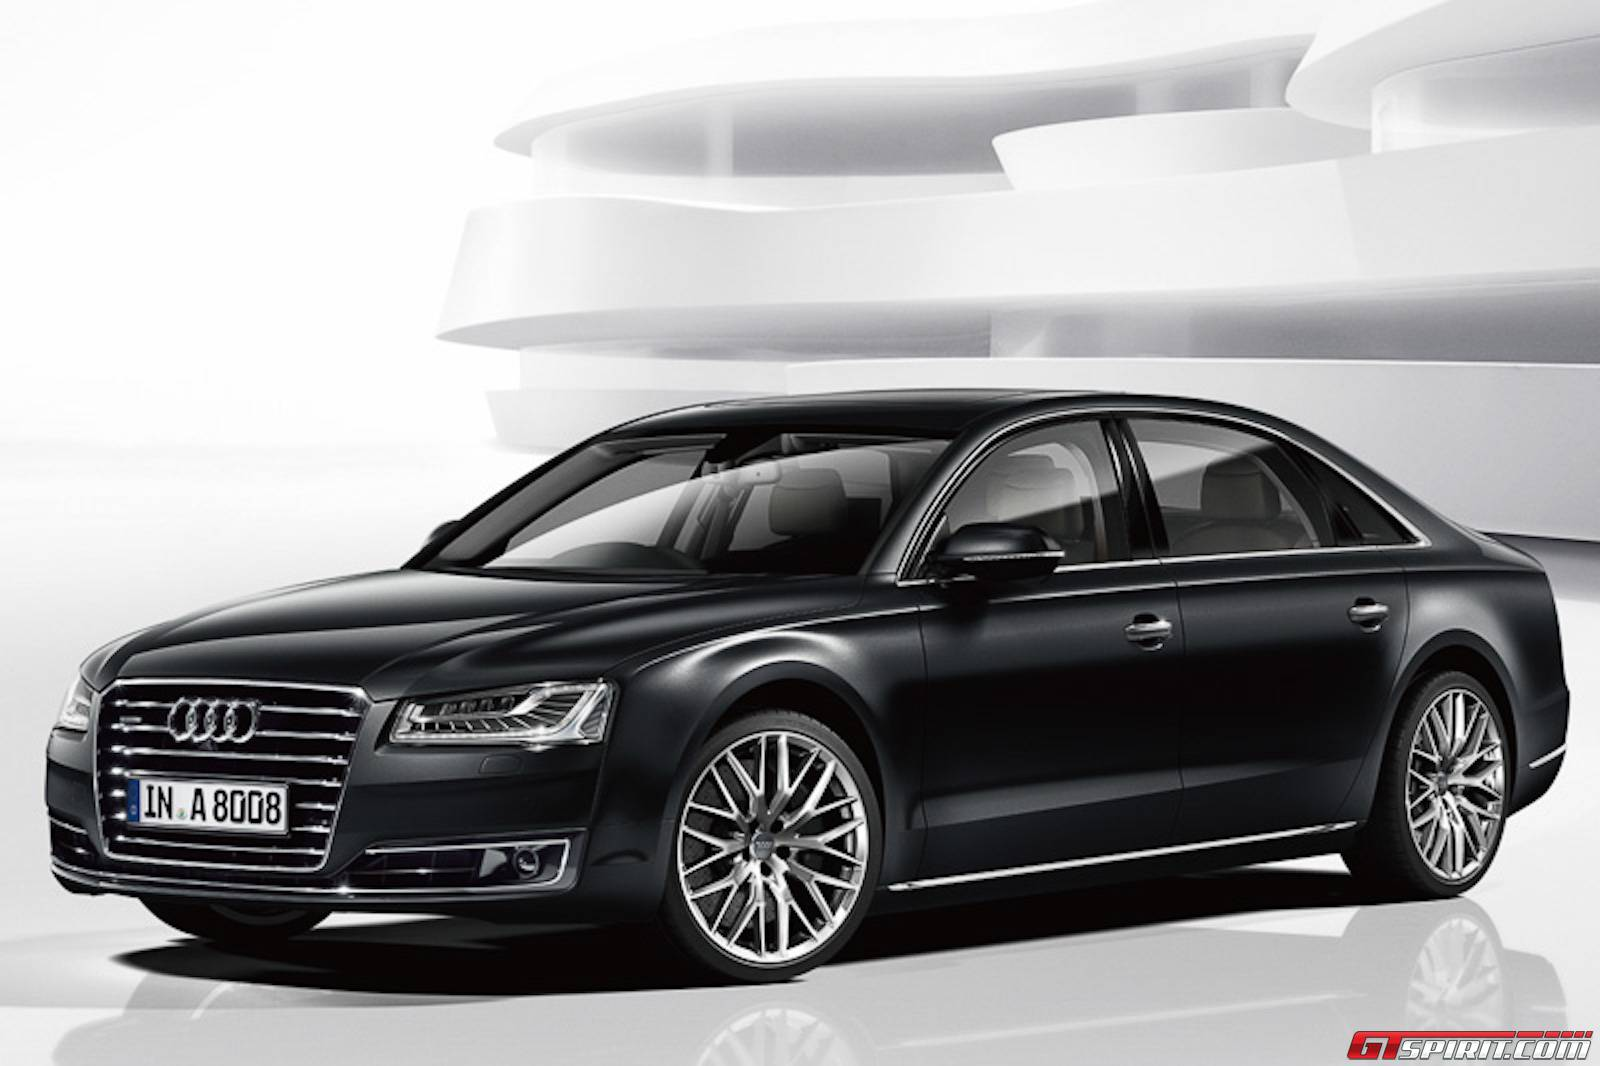 Two New Audi A8 Editions Launched In Japan Gtspirit